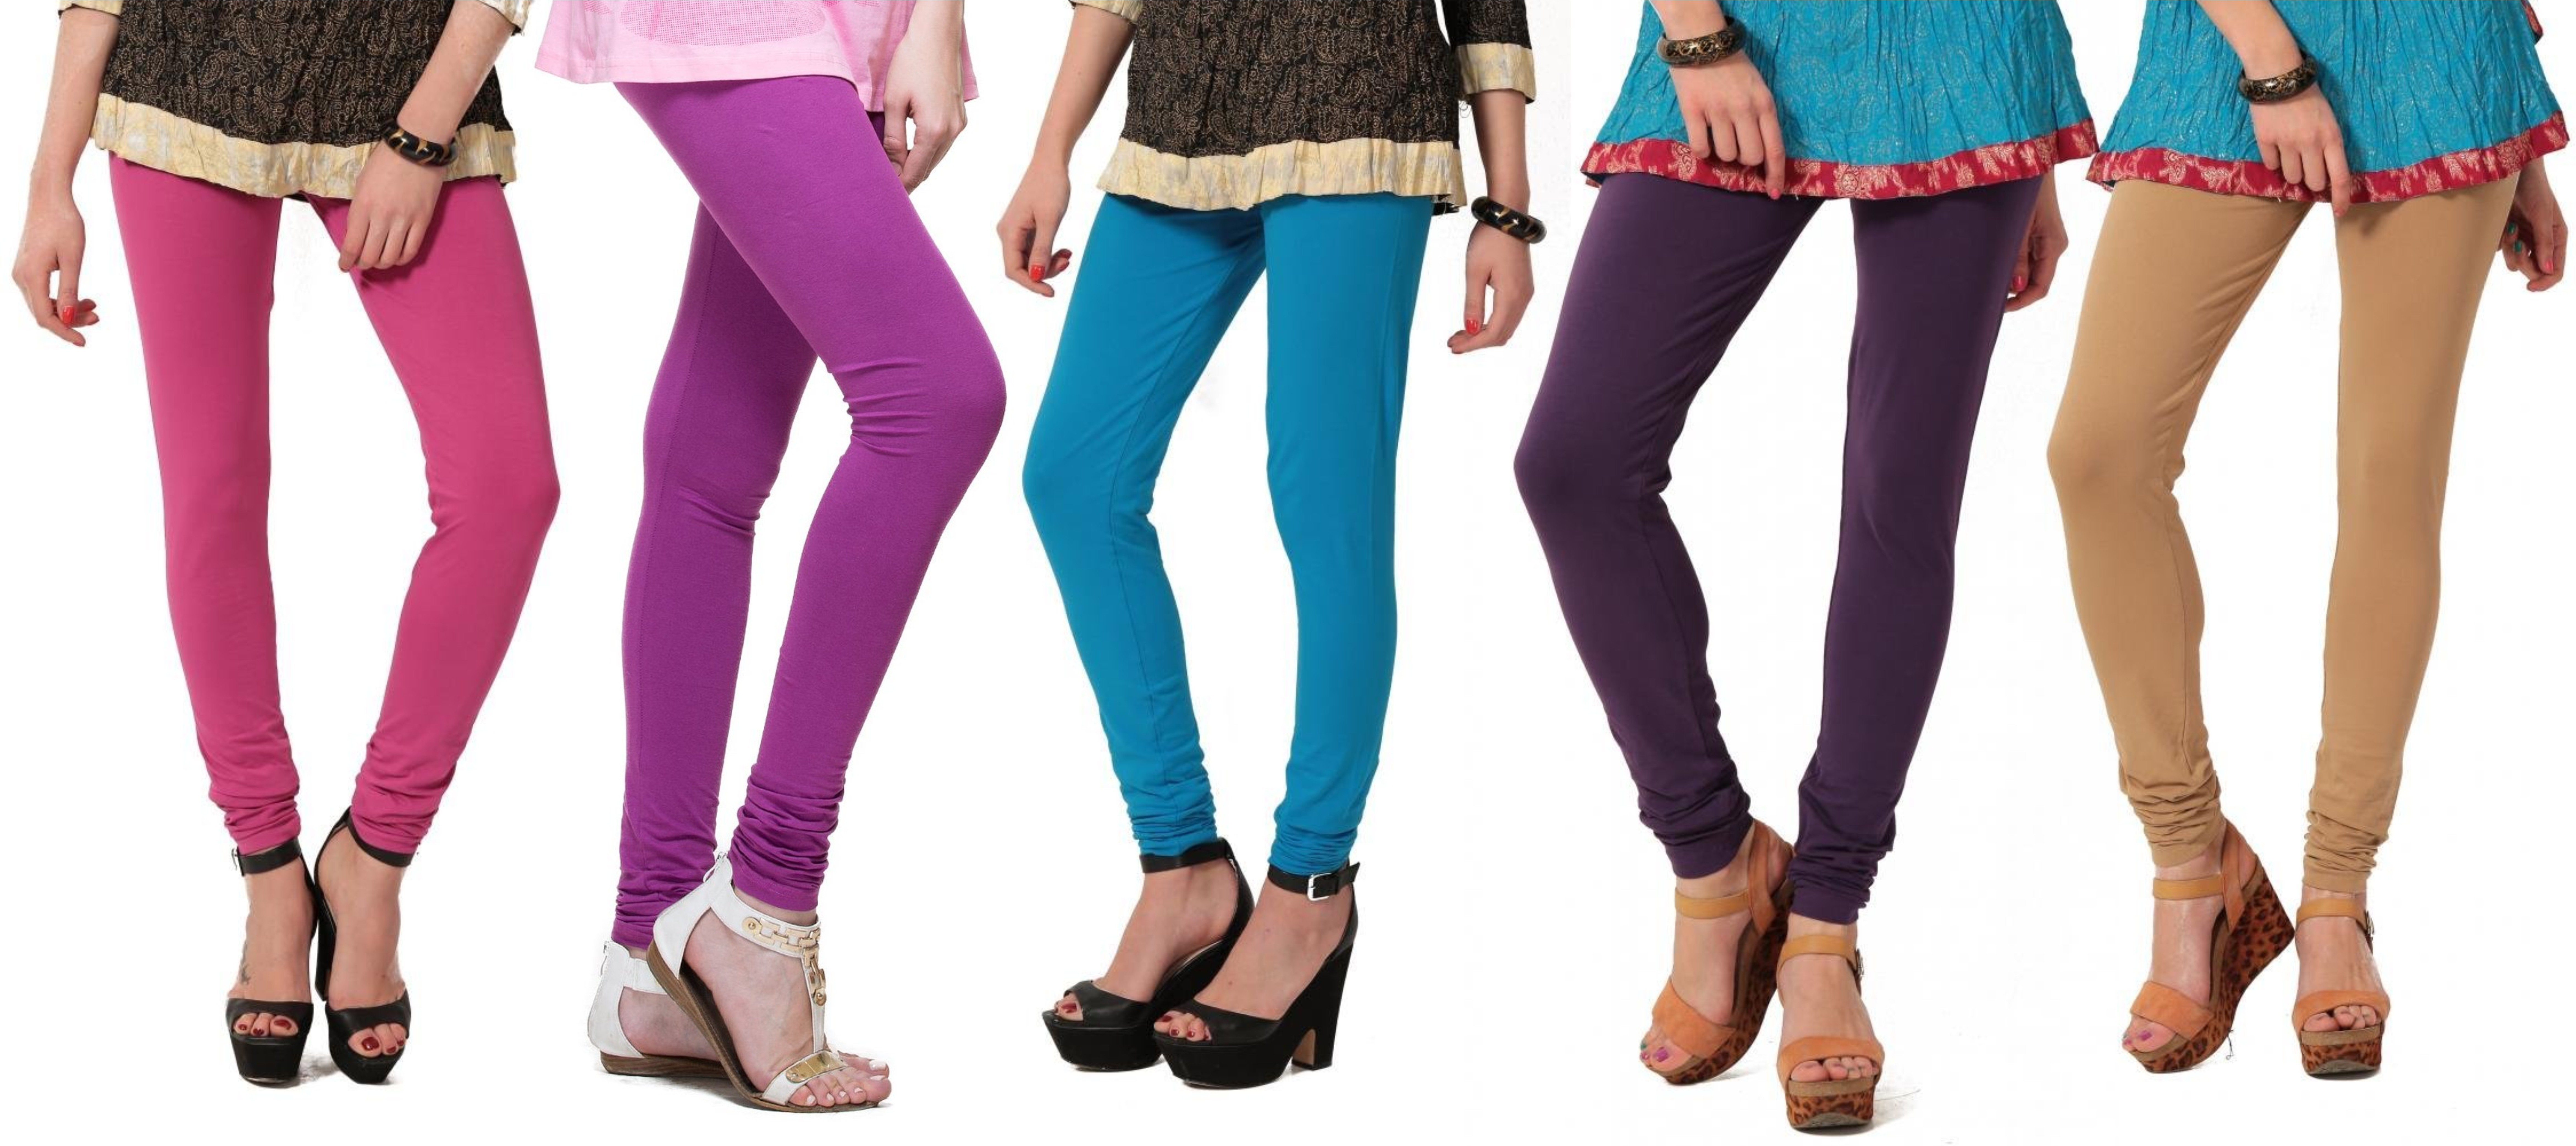 Angel Soft Womens Pink, Purple, Light Blue, Purple, Beige Leggings(Pack of 5)